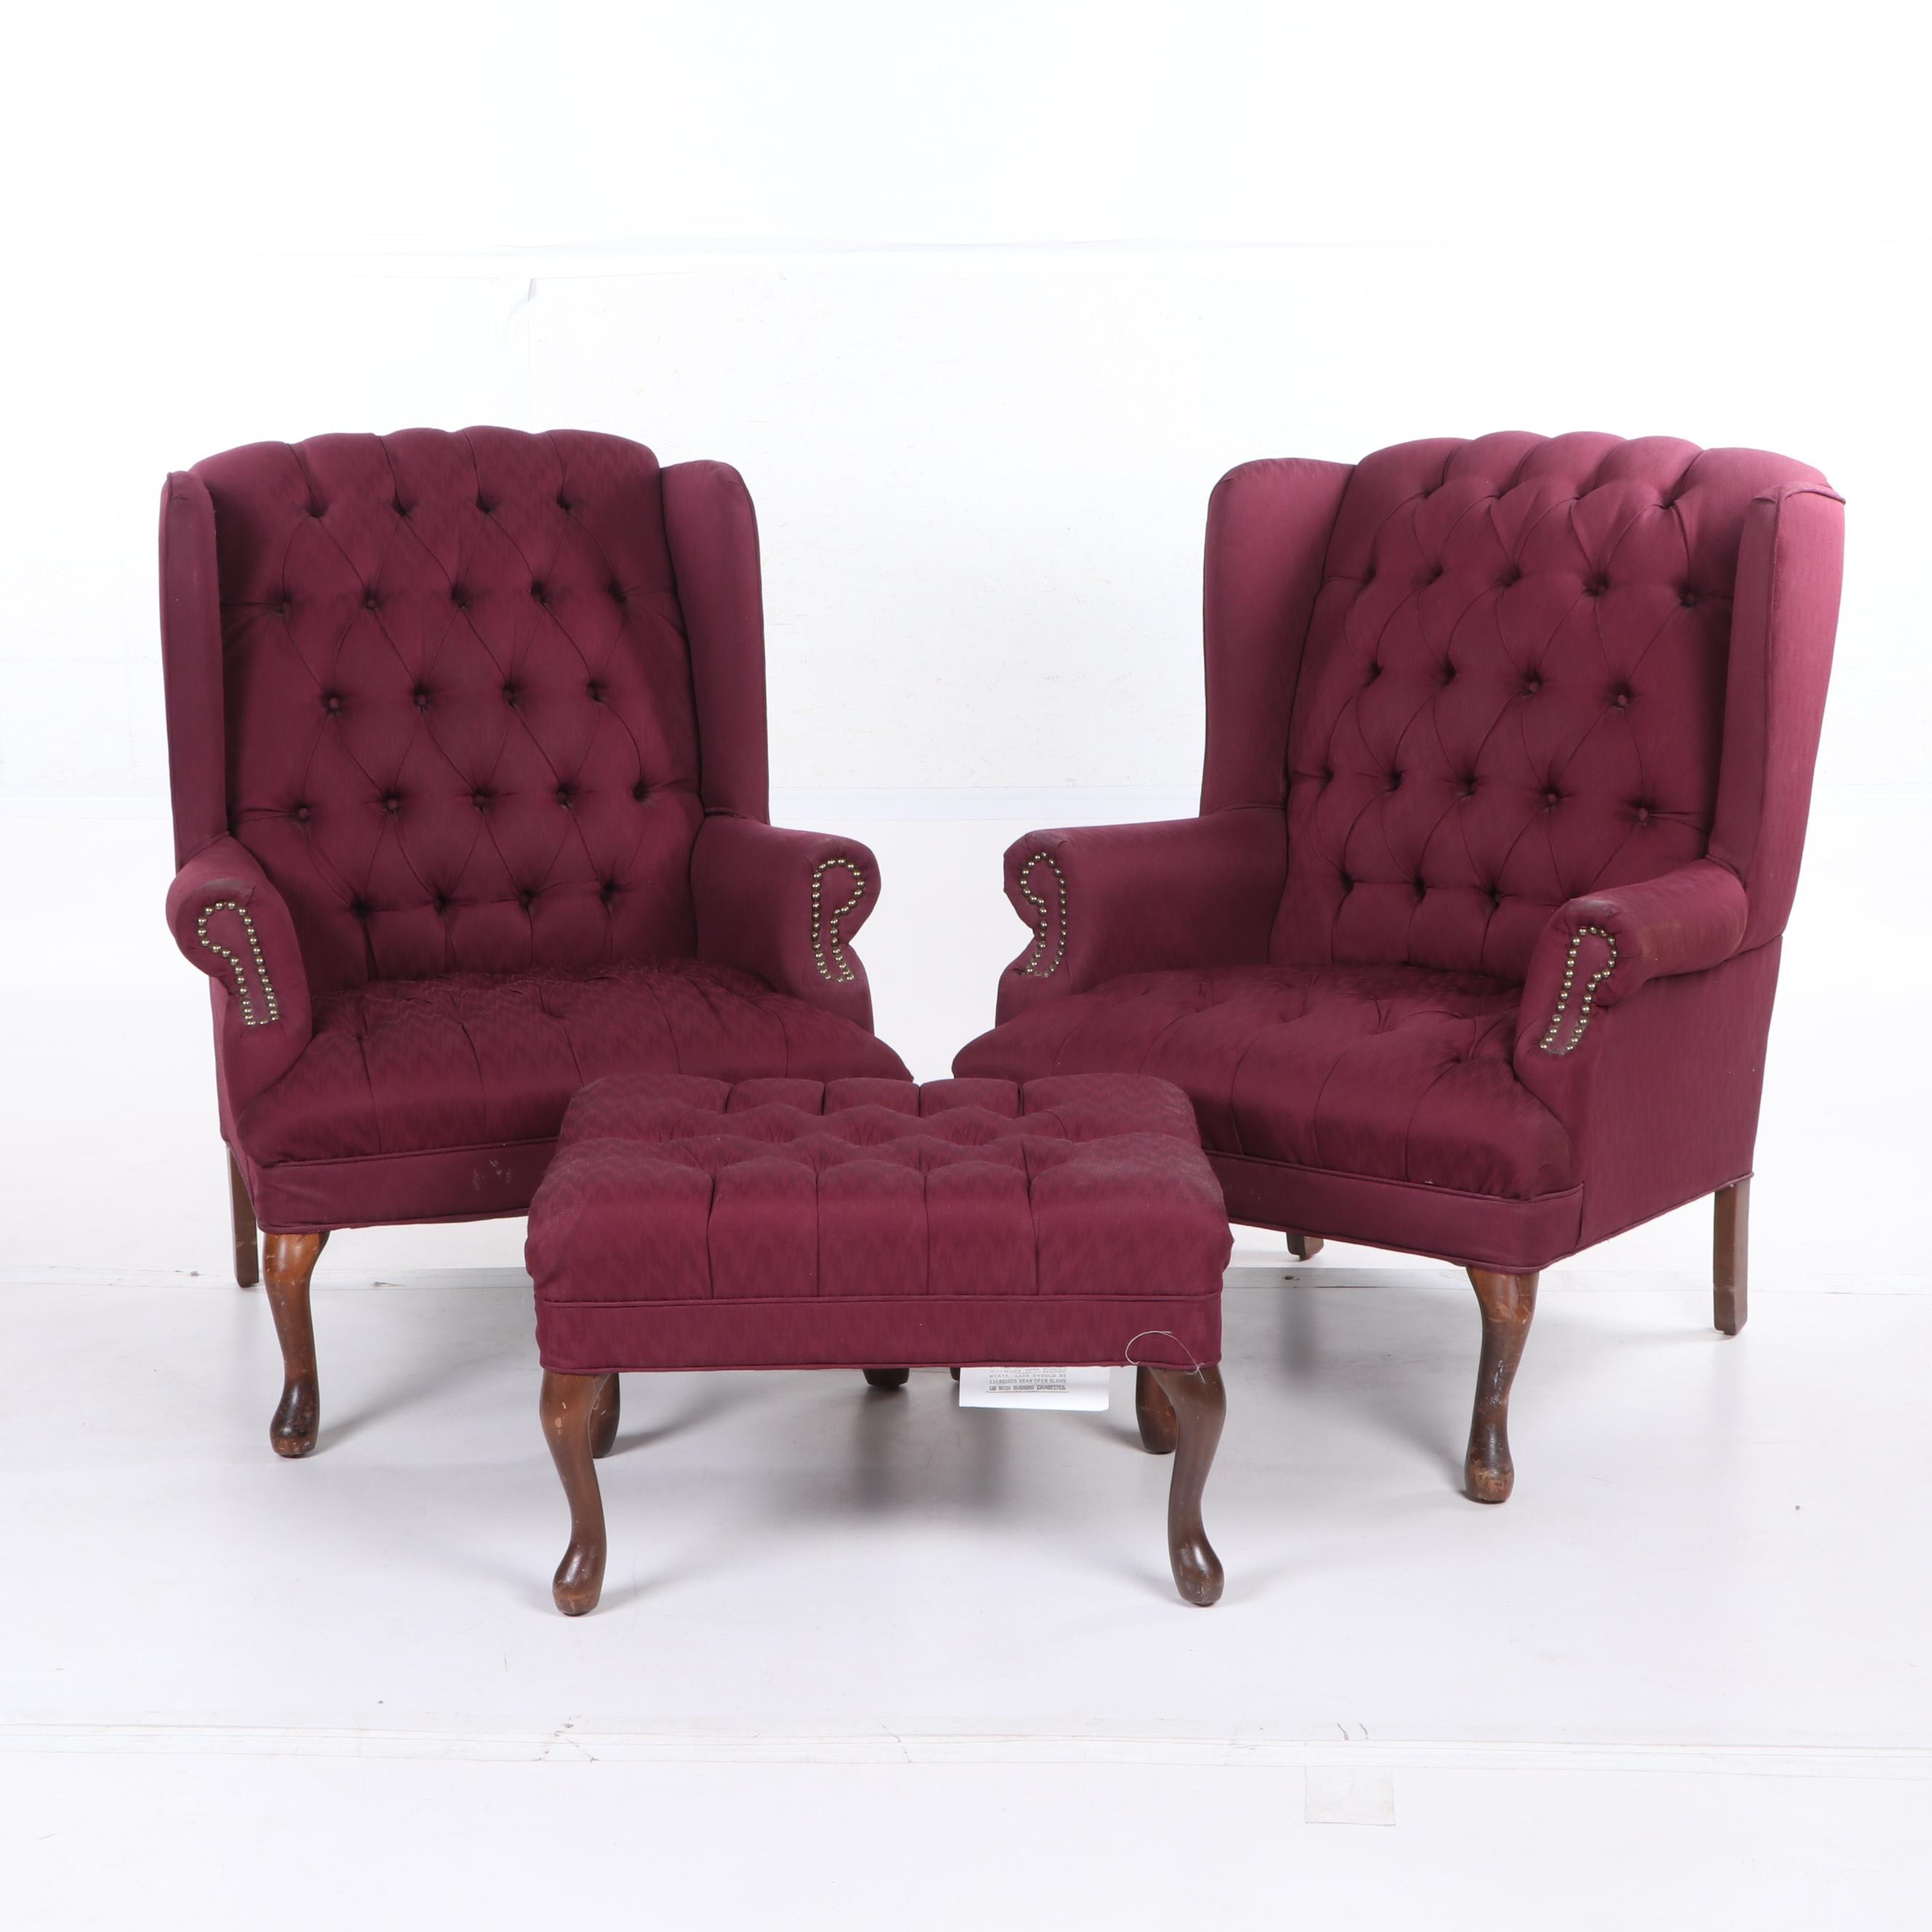 Queen Anne Style Tufted Wingback Chairs with Ottoman, Late 20th Century